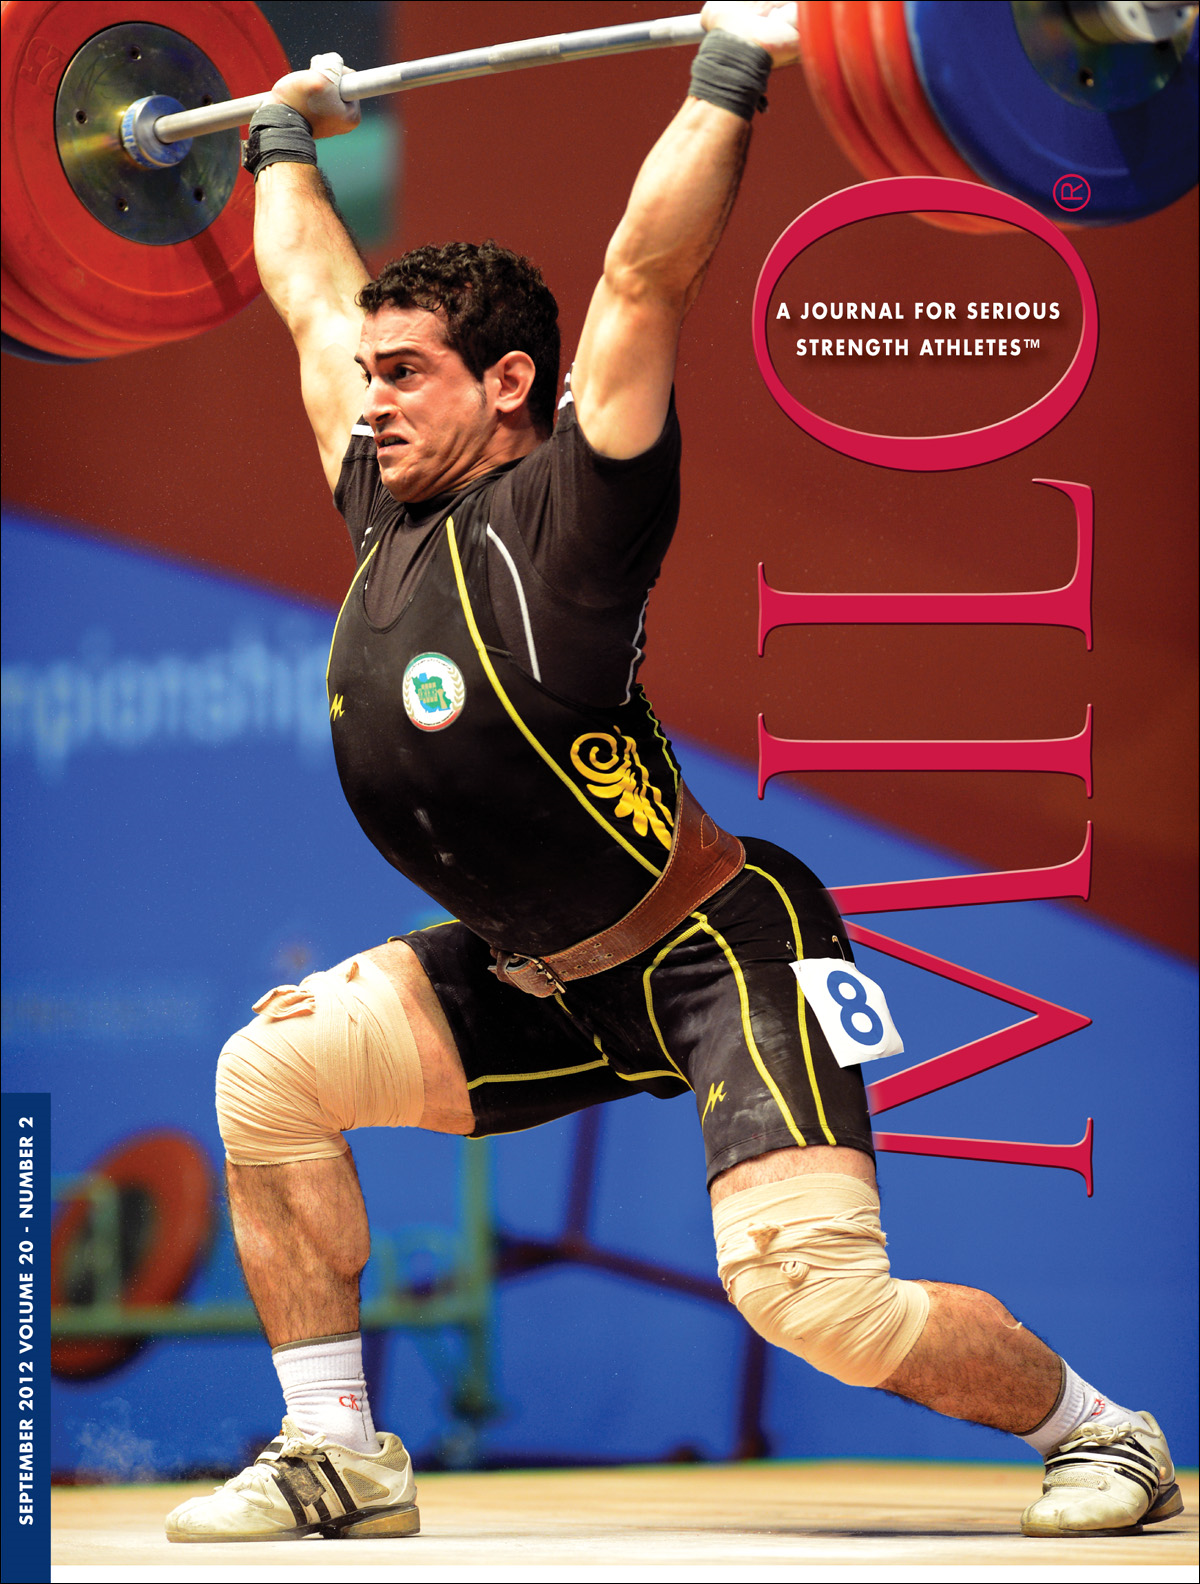 MILO: A Journal for Serious Strength Athletes, September 2012, Vol. 20, No. 2